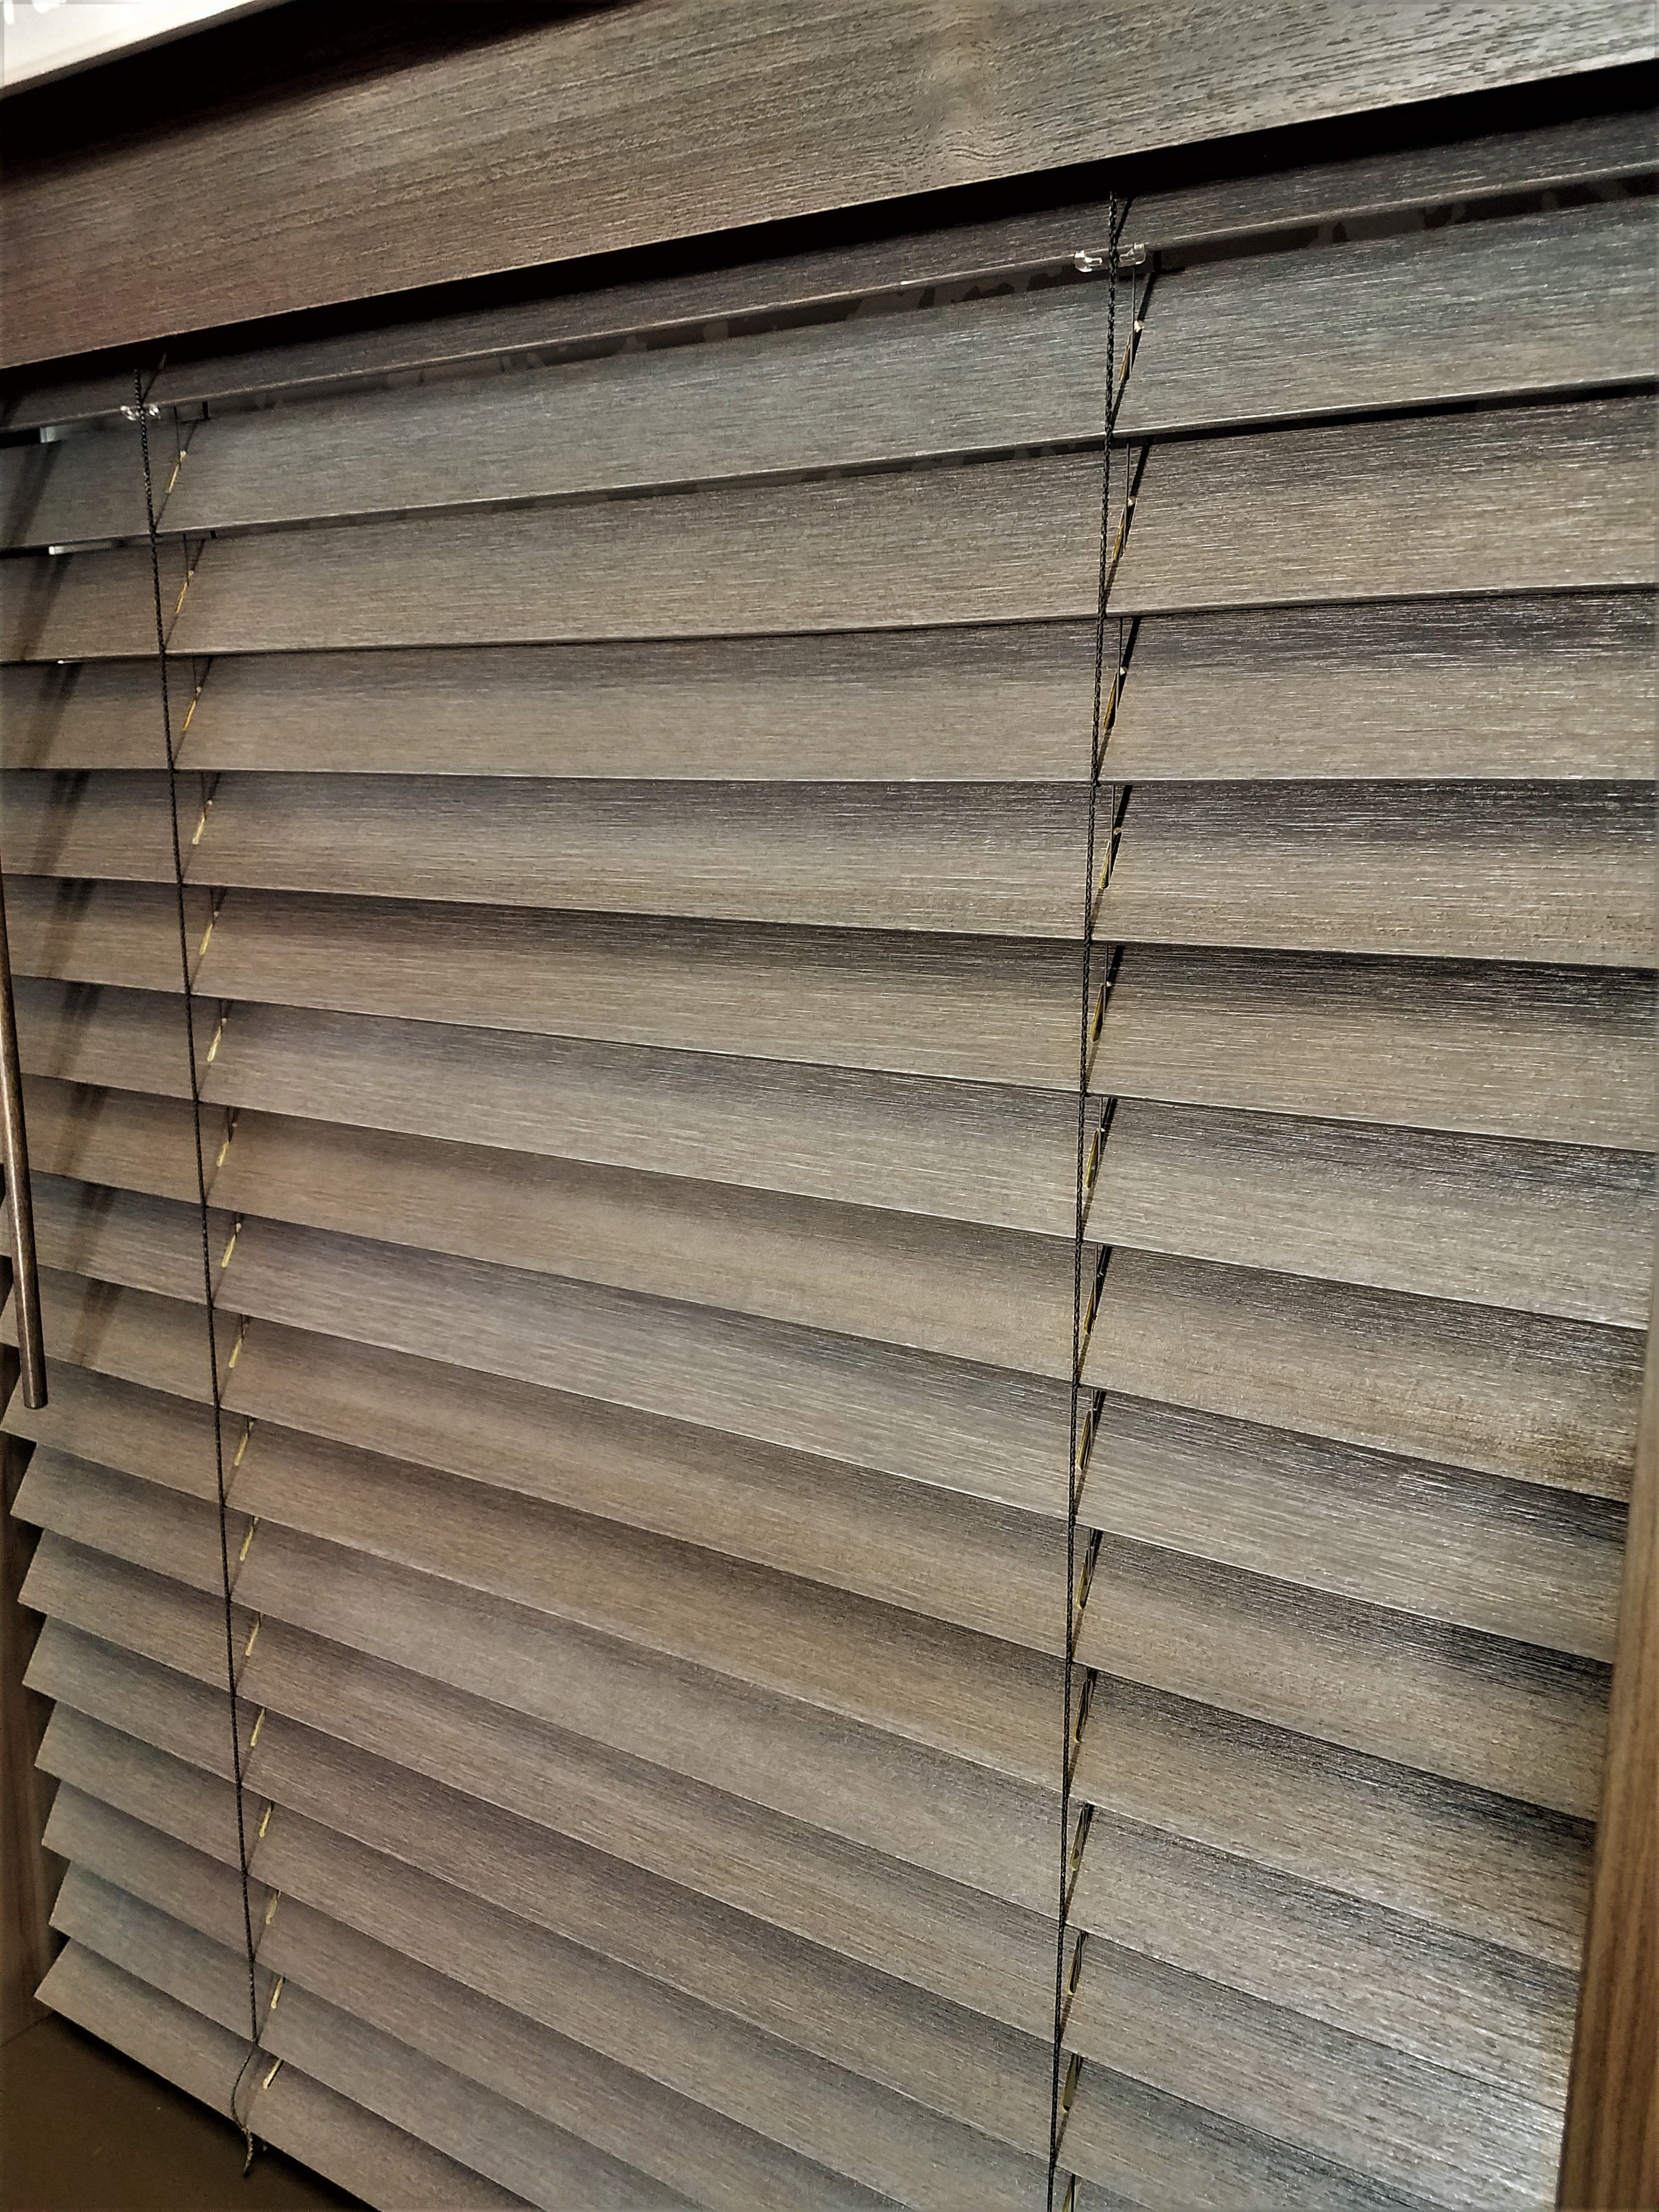 blinds beach shutters cost hunter seattle price parts polysatin repair everwood palm reviews nj s heritance motorized douglas review